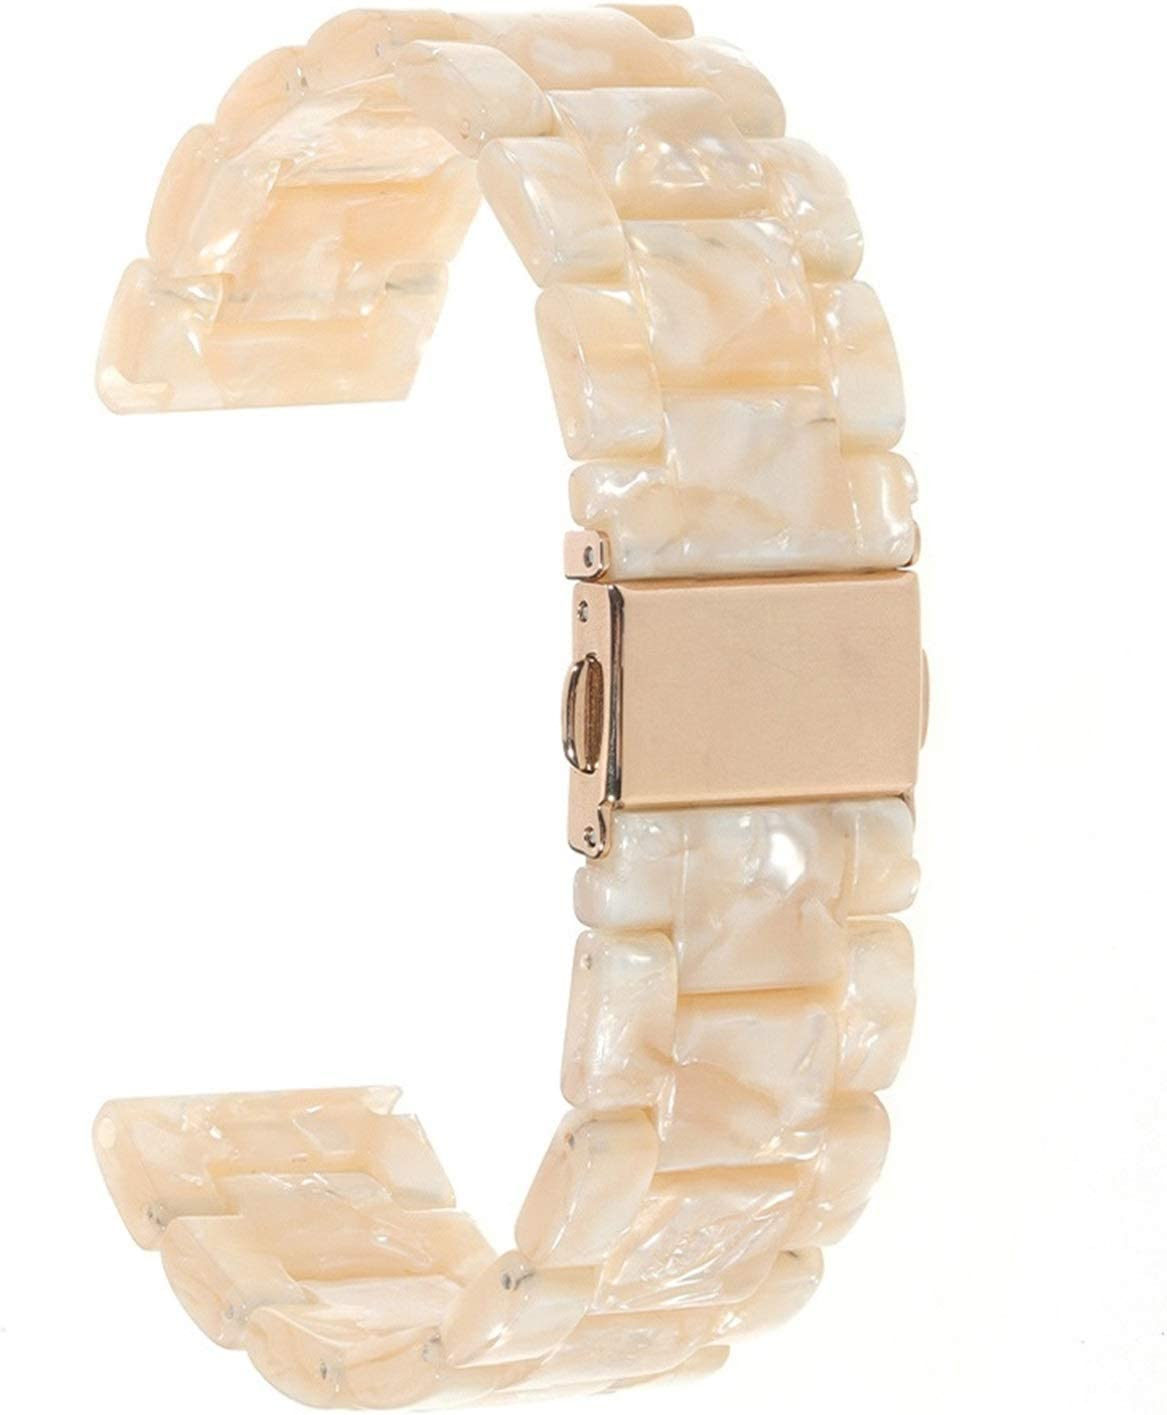 ZQAFAC Fashion Resin Wrist Strap for Watch SE 4 Band 6 Max 90% OFF 5 Seattle Mall Series